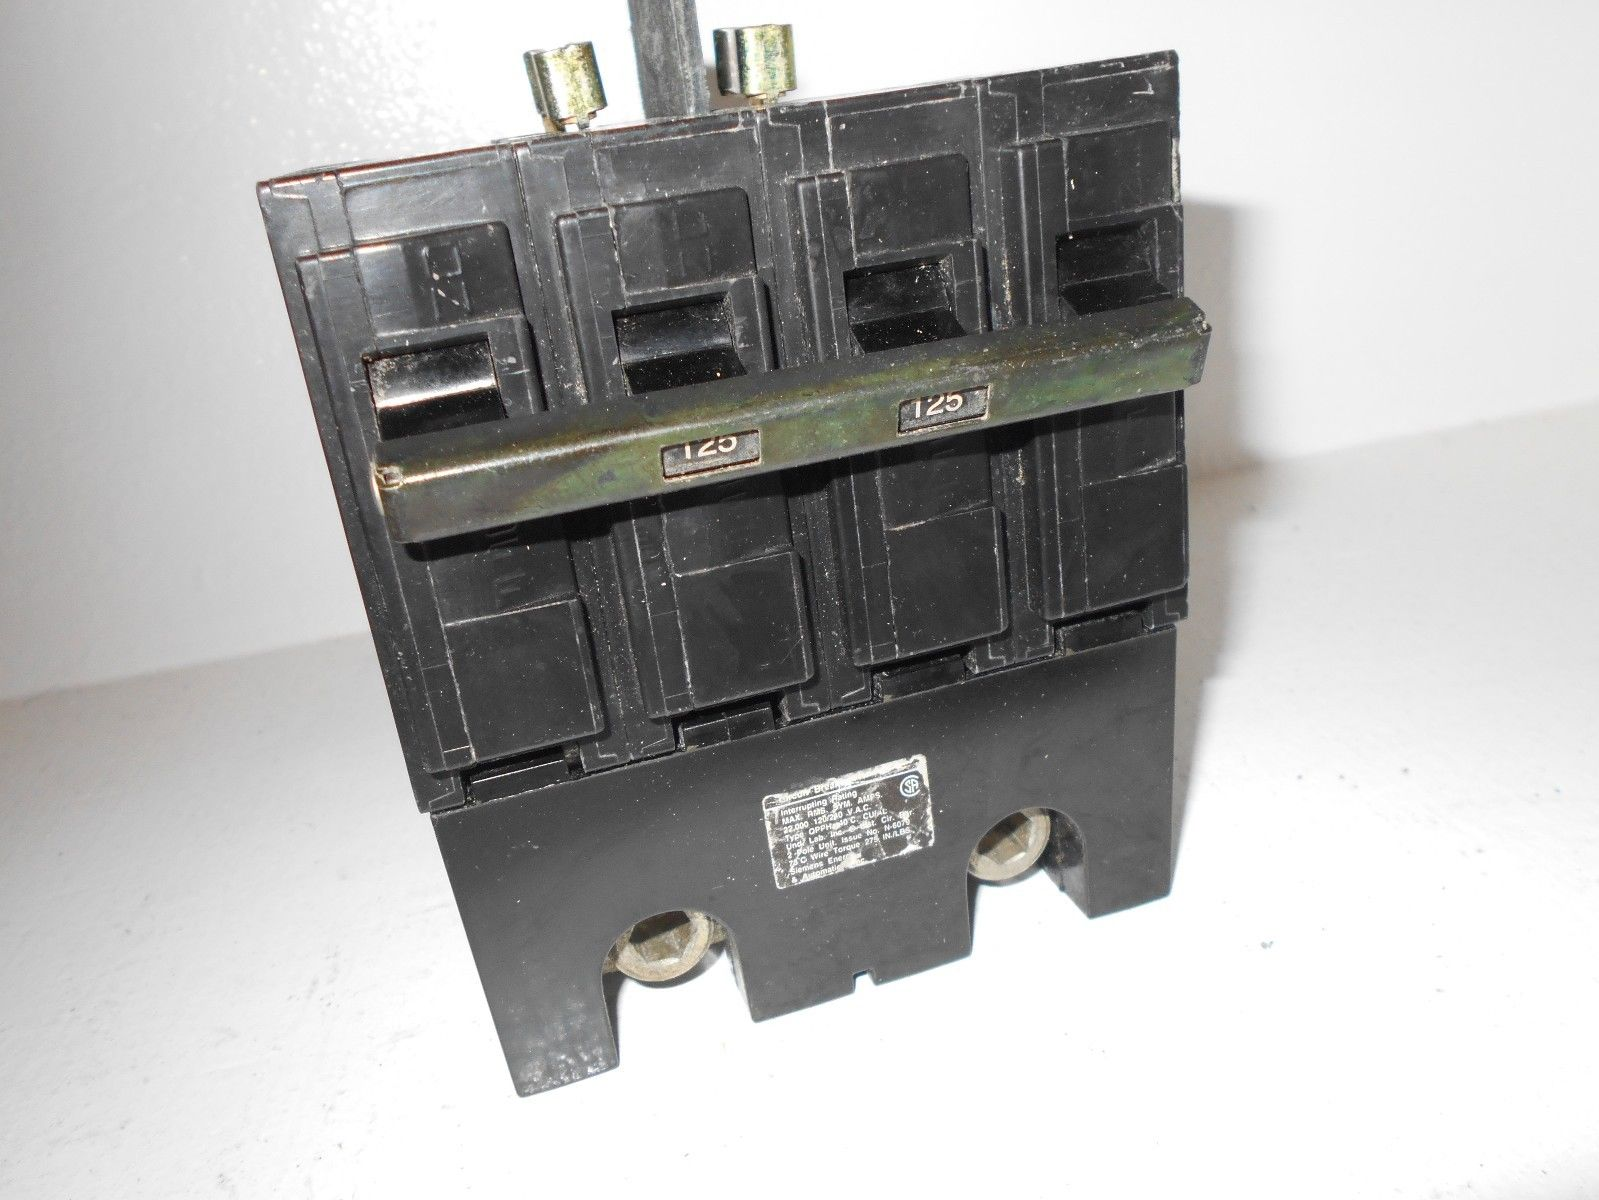 2 Pole Siemens Main Breaker Wiring All Kind Of Diagrams Gfci Diagram Ite Q2125bh 125 Amp 240 Volt High Interrupting Powered Electric Supply Box Sub Panel